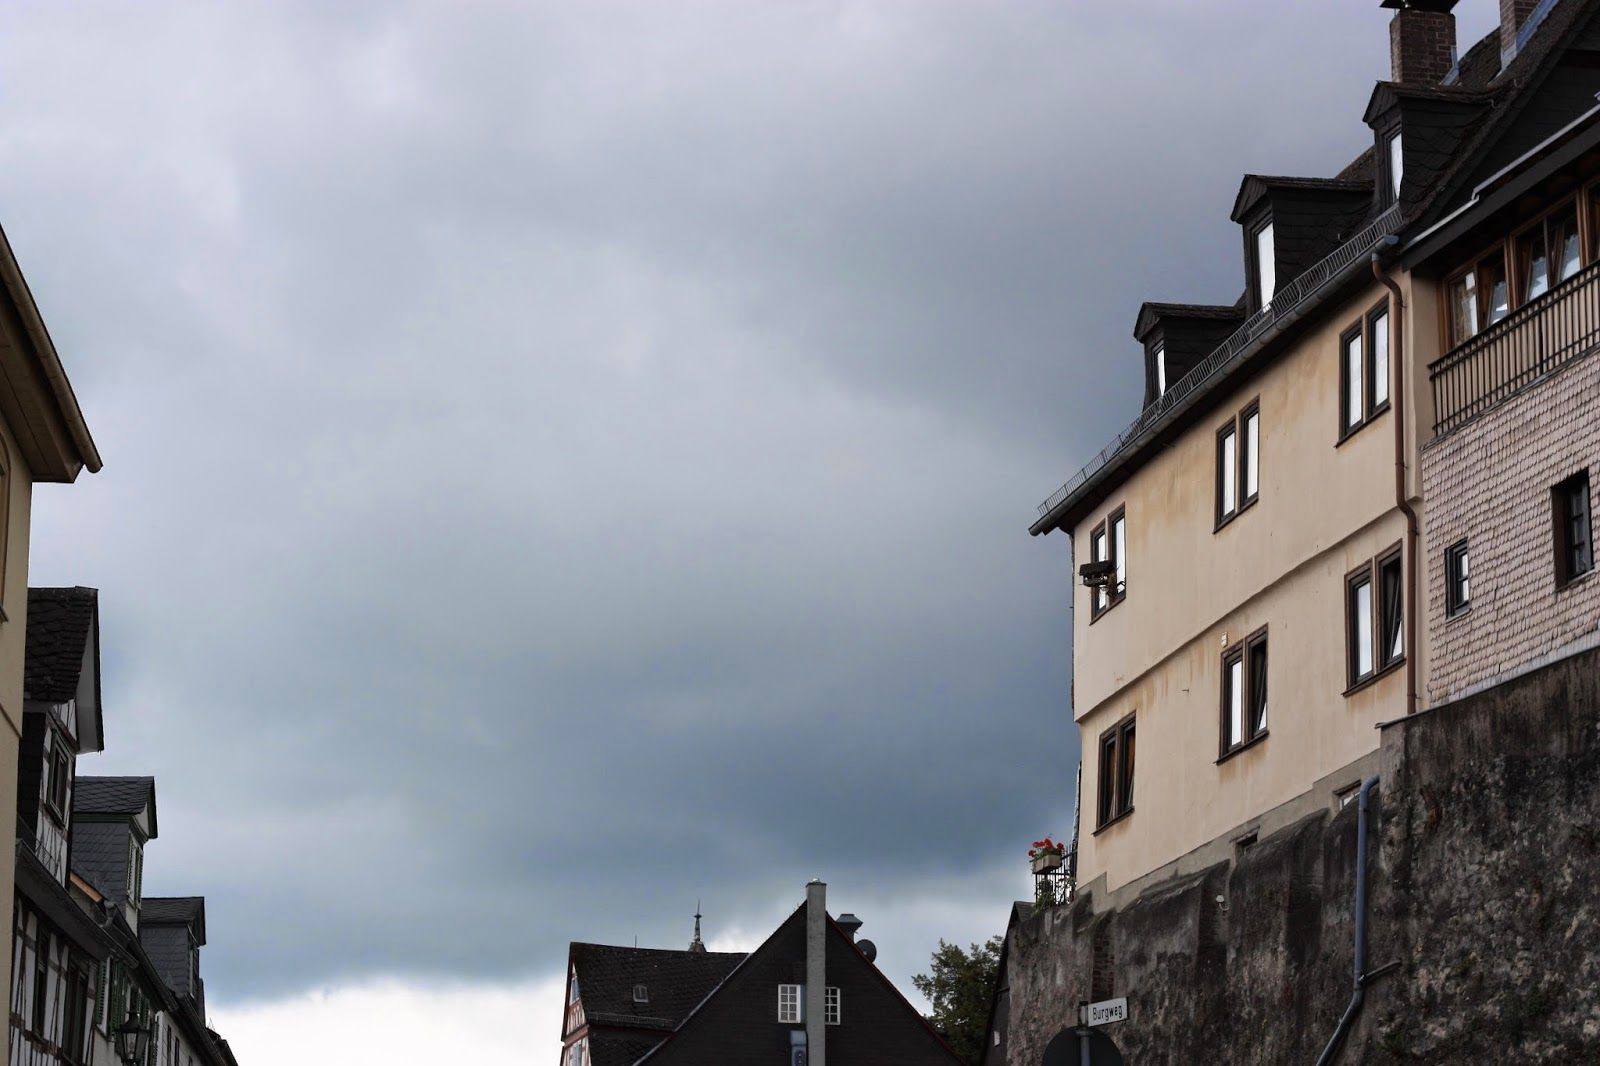 dark skies over Braunfels, Germany